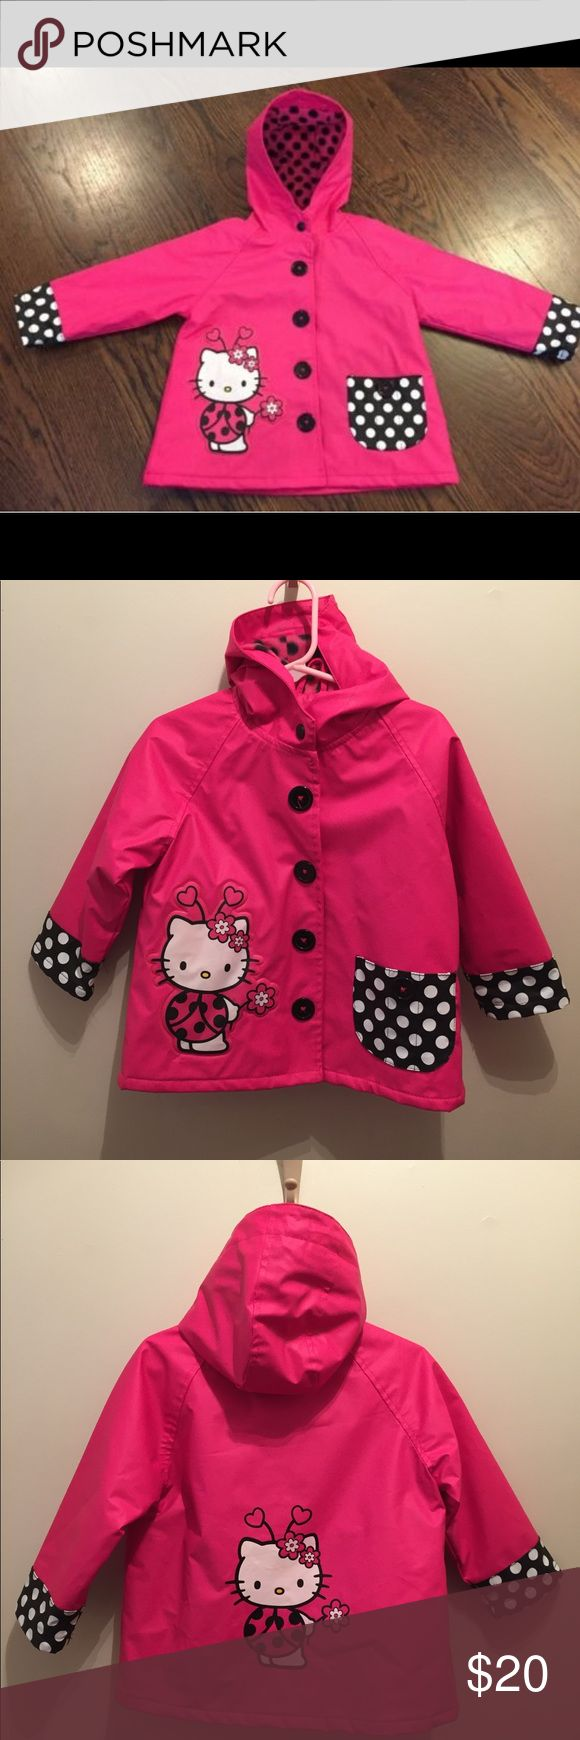 Cute raincoat Perfect for the hello kitty fan! Waterproof outer and warm inner lining. Hood and functional pocket in the front. The buttons are actually snaps for easy on/off. Western Chief Jackets & Coats